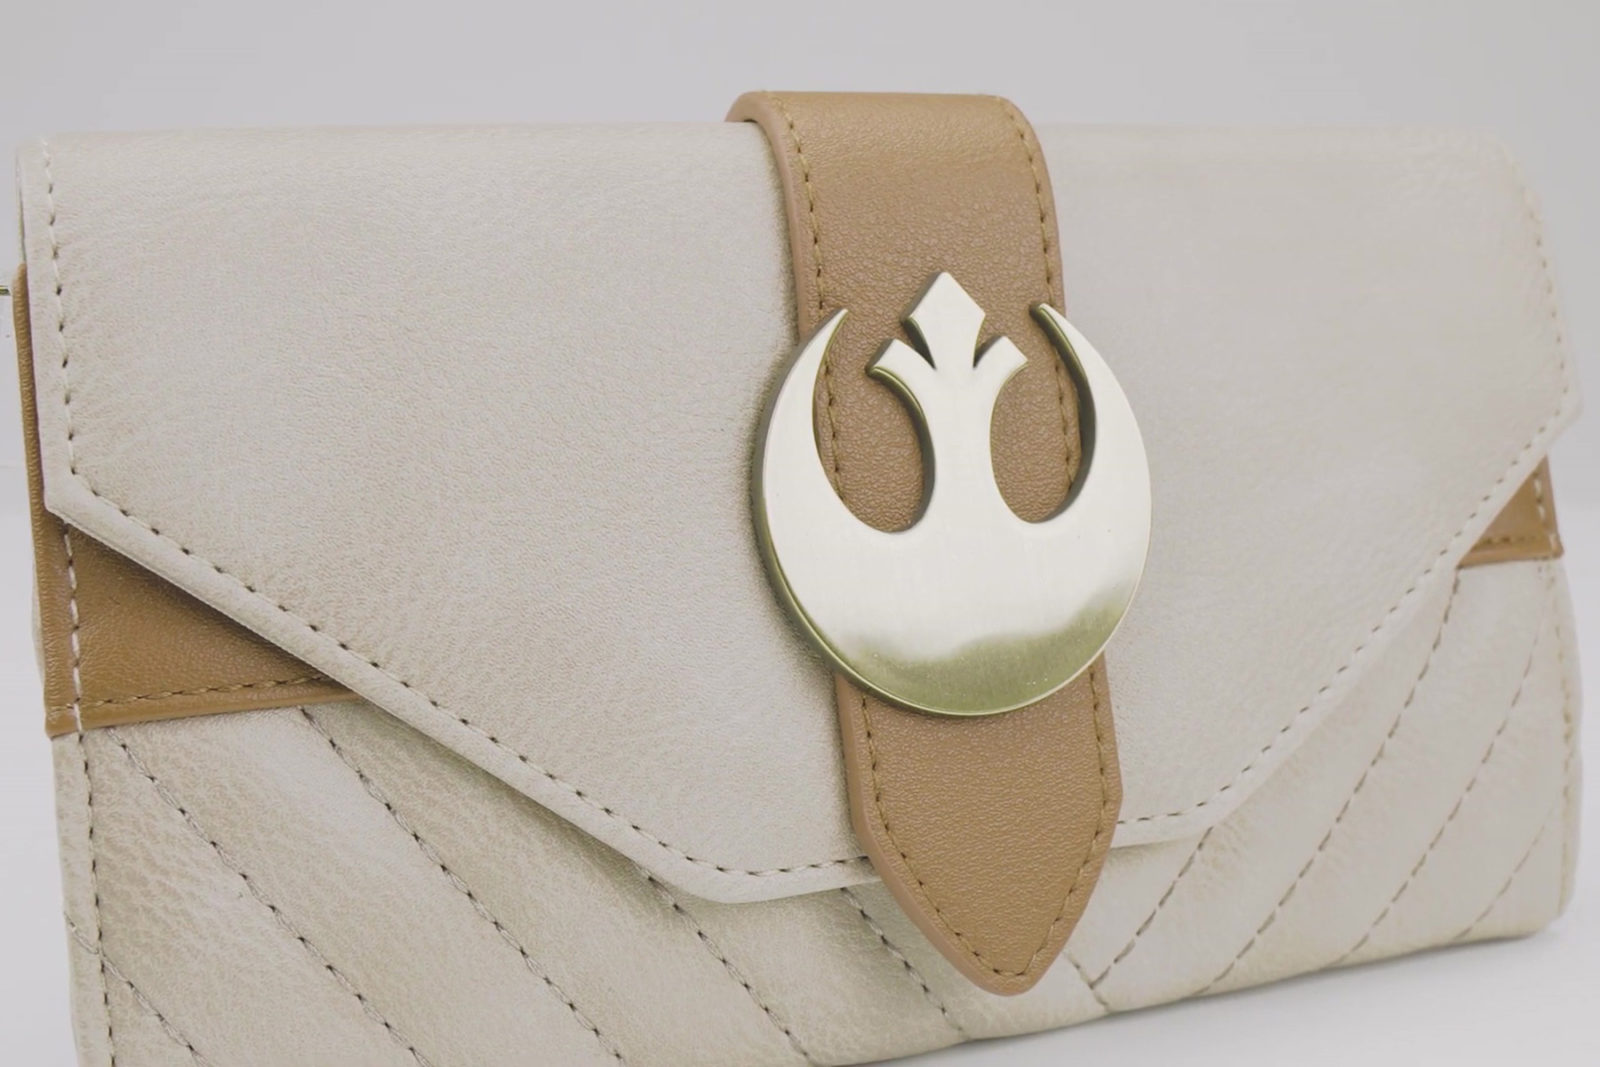 Bioworld x Star Wars The Rise Of Skywalker Rey Mini Backpack and Wallet